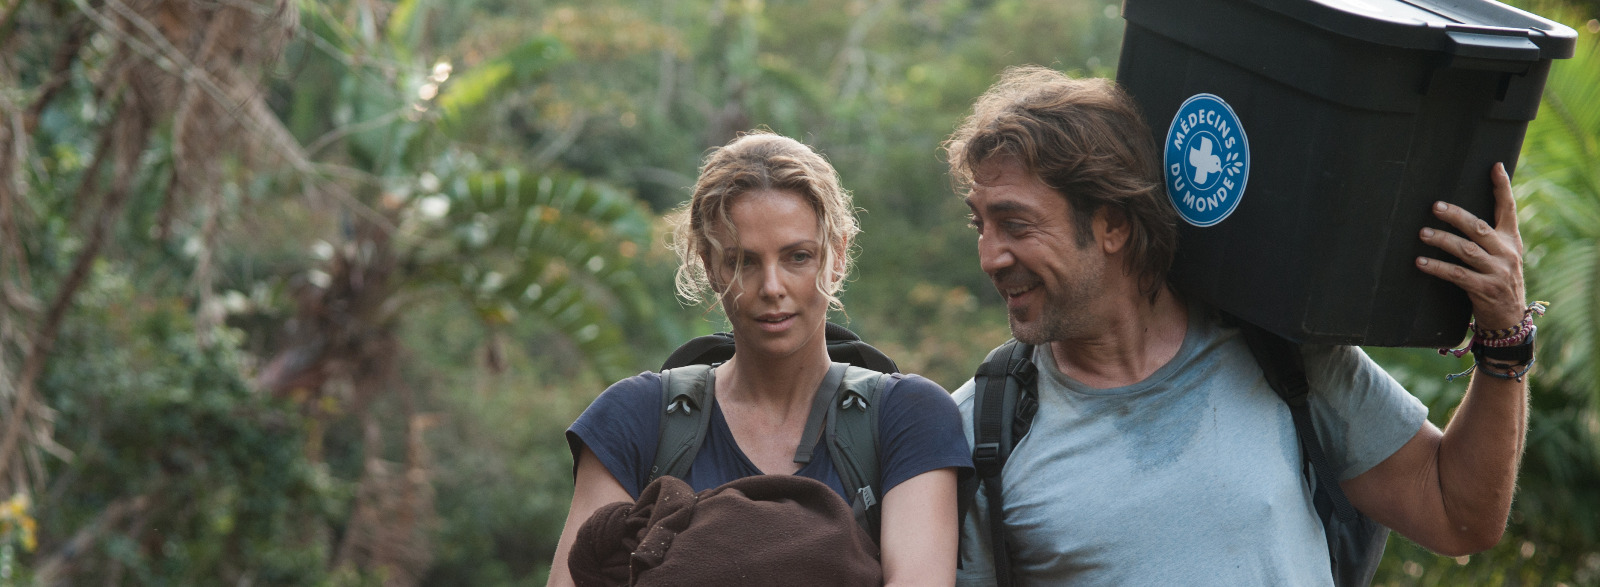 « The Last Face », de Sean Penn